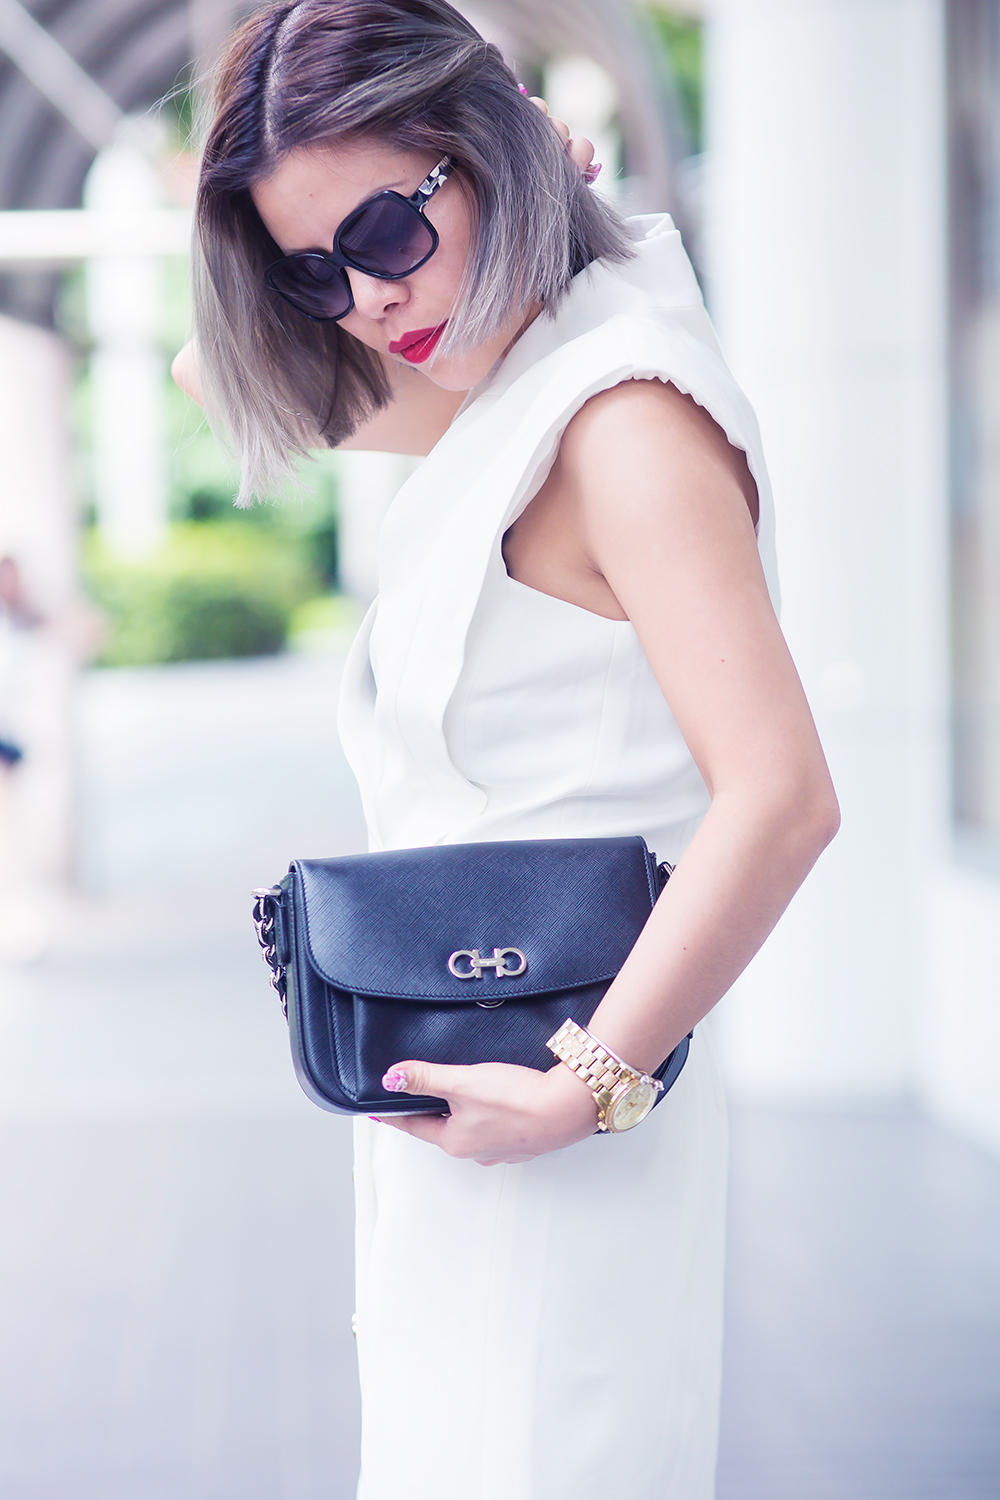 Crystal Phuong x Revolve Clothing- Total contrast